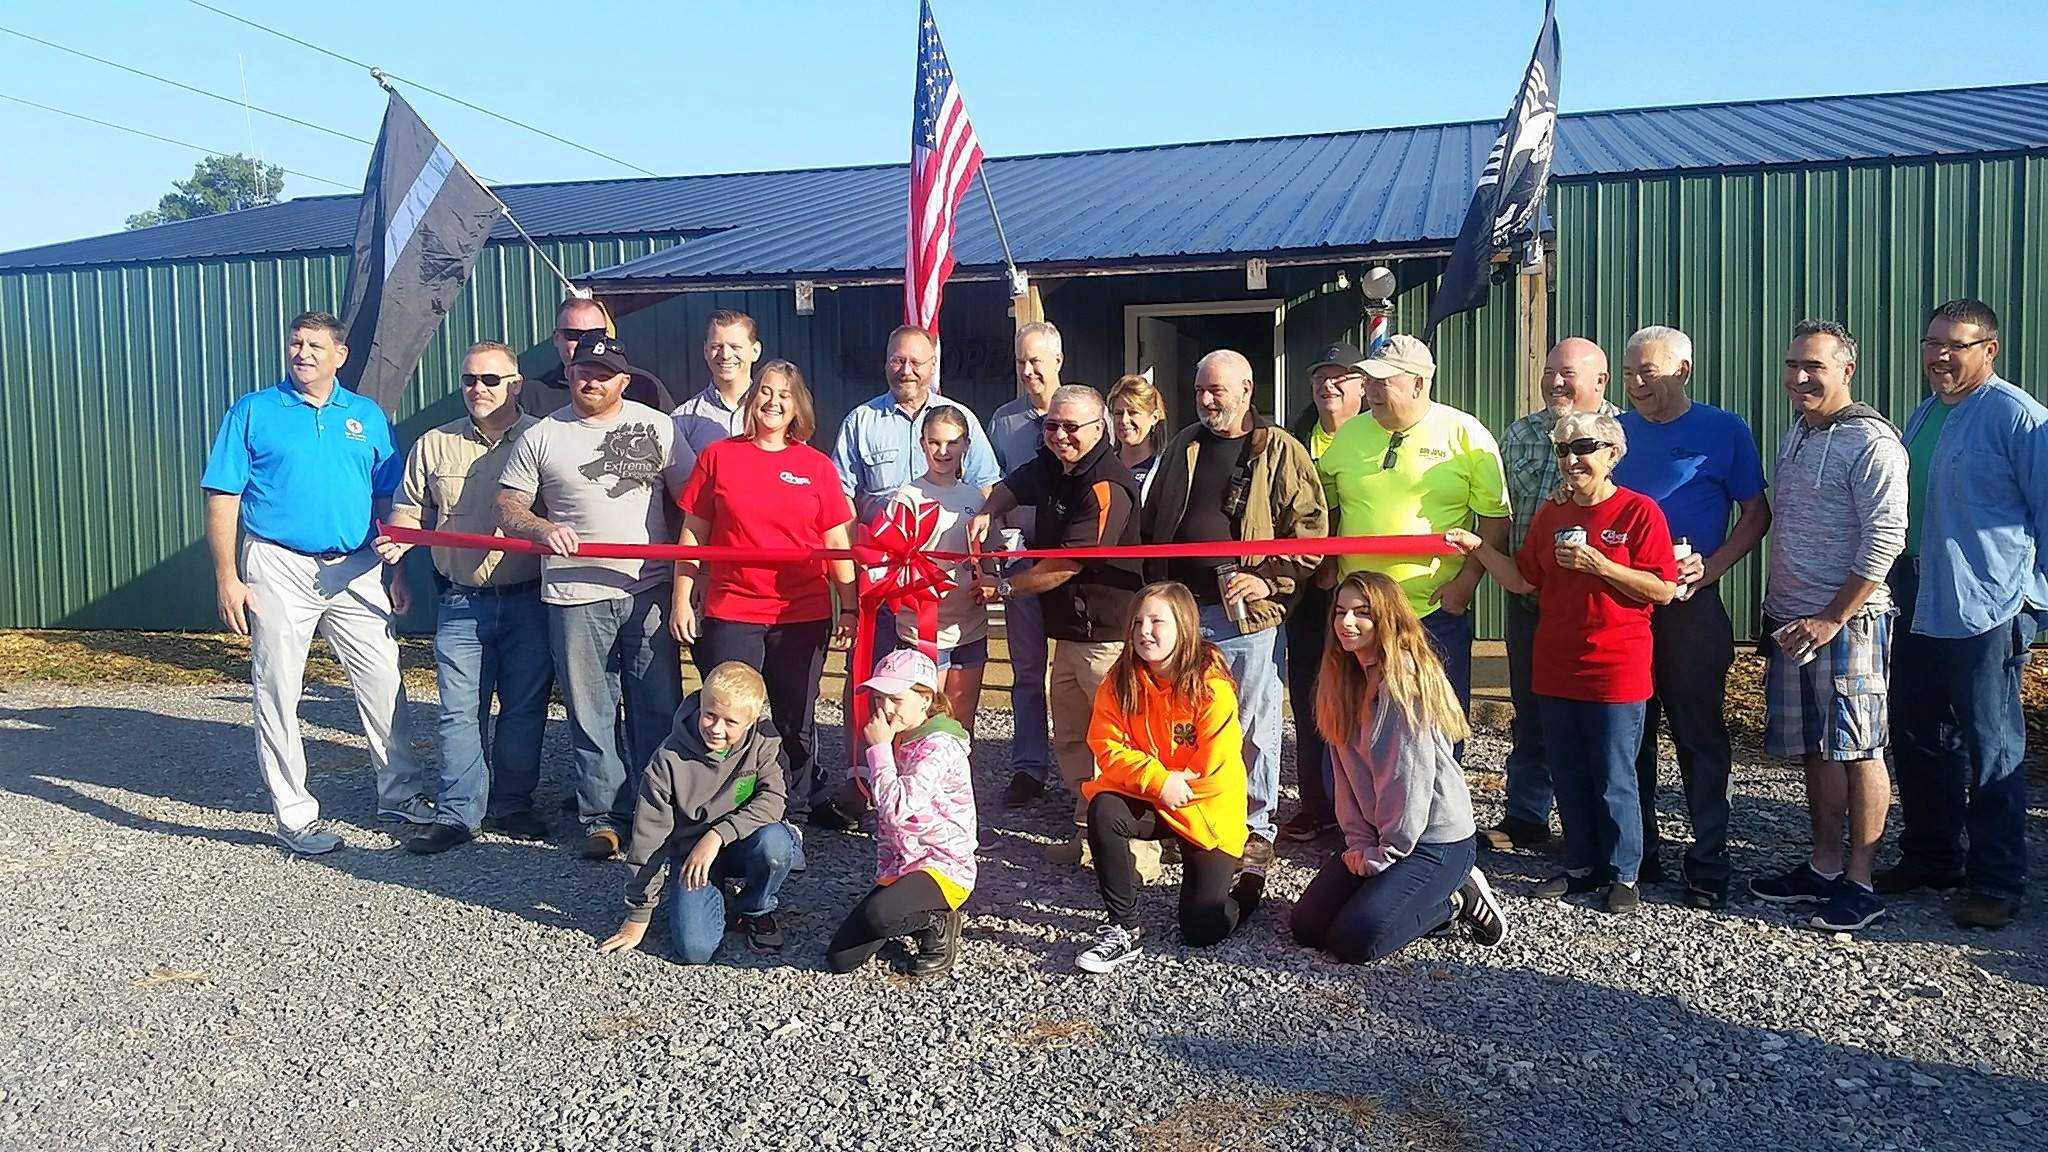 City officials and Chamber members gathered Friday for a ribbon-cutting ceremony to welcome Extreme Exigency to Benton.